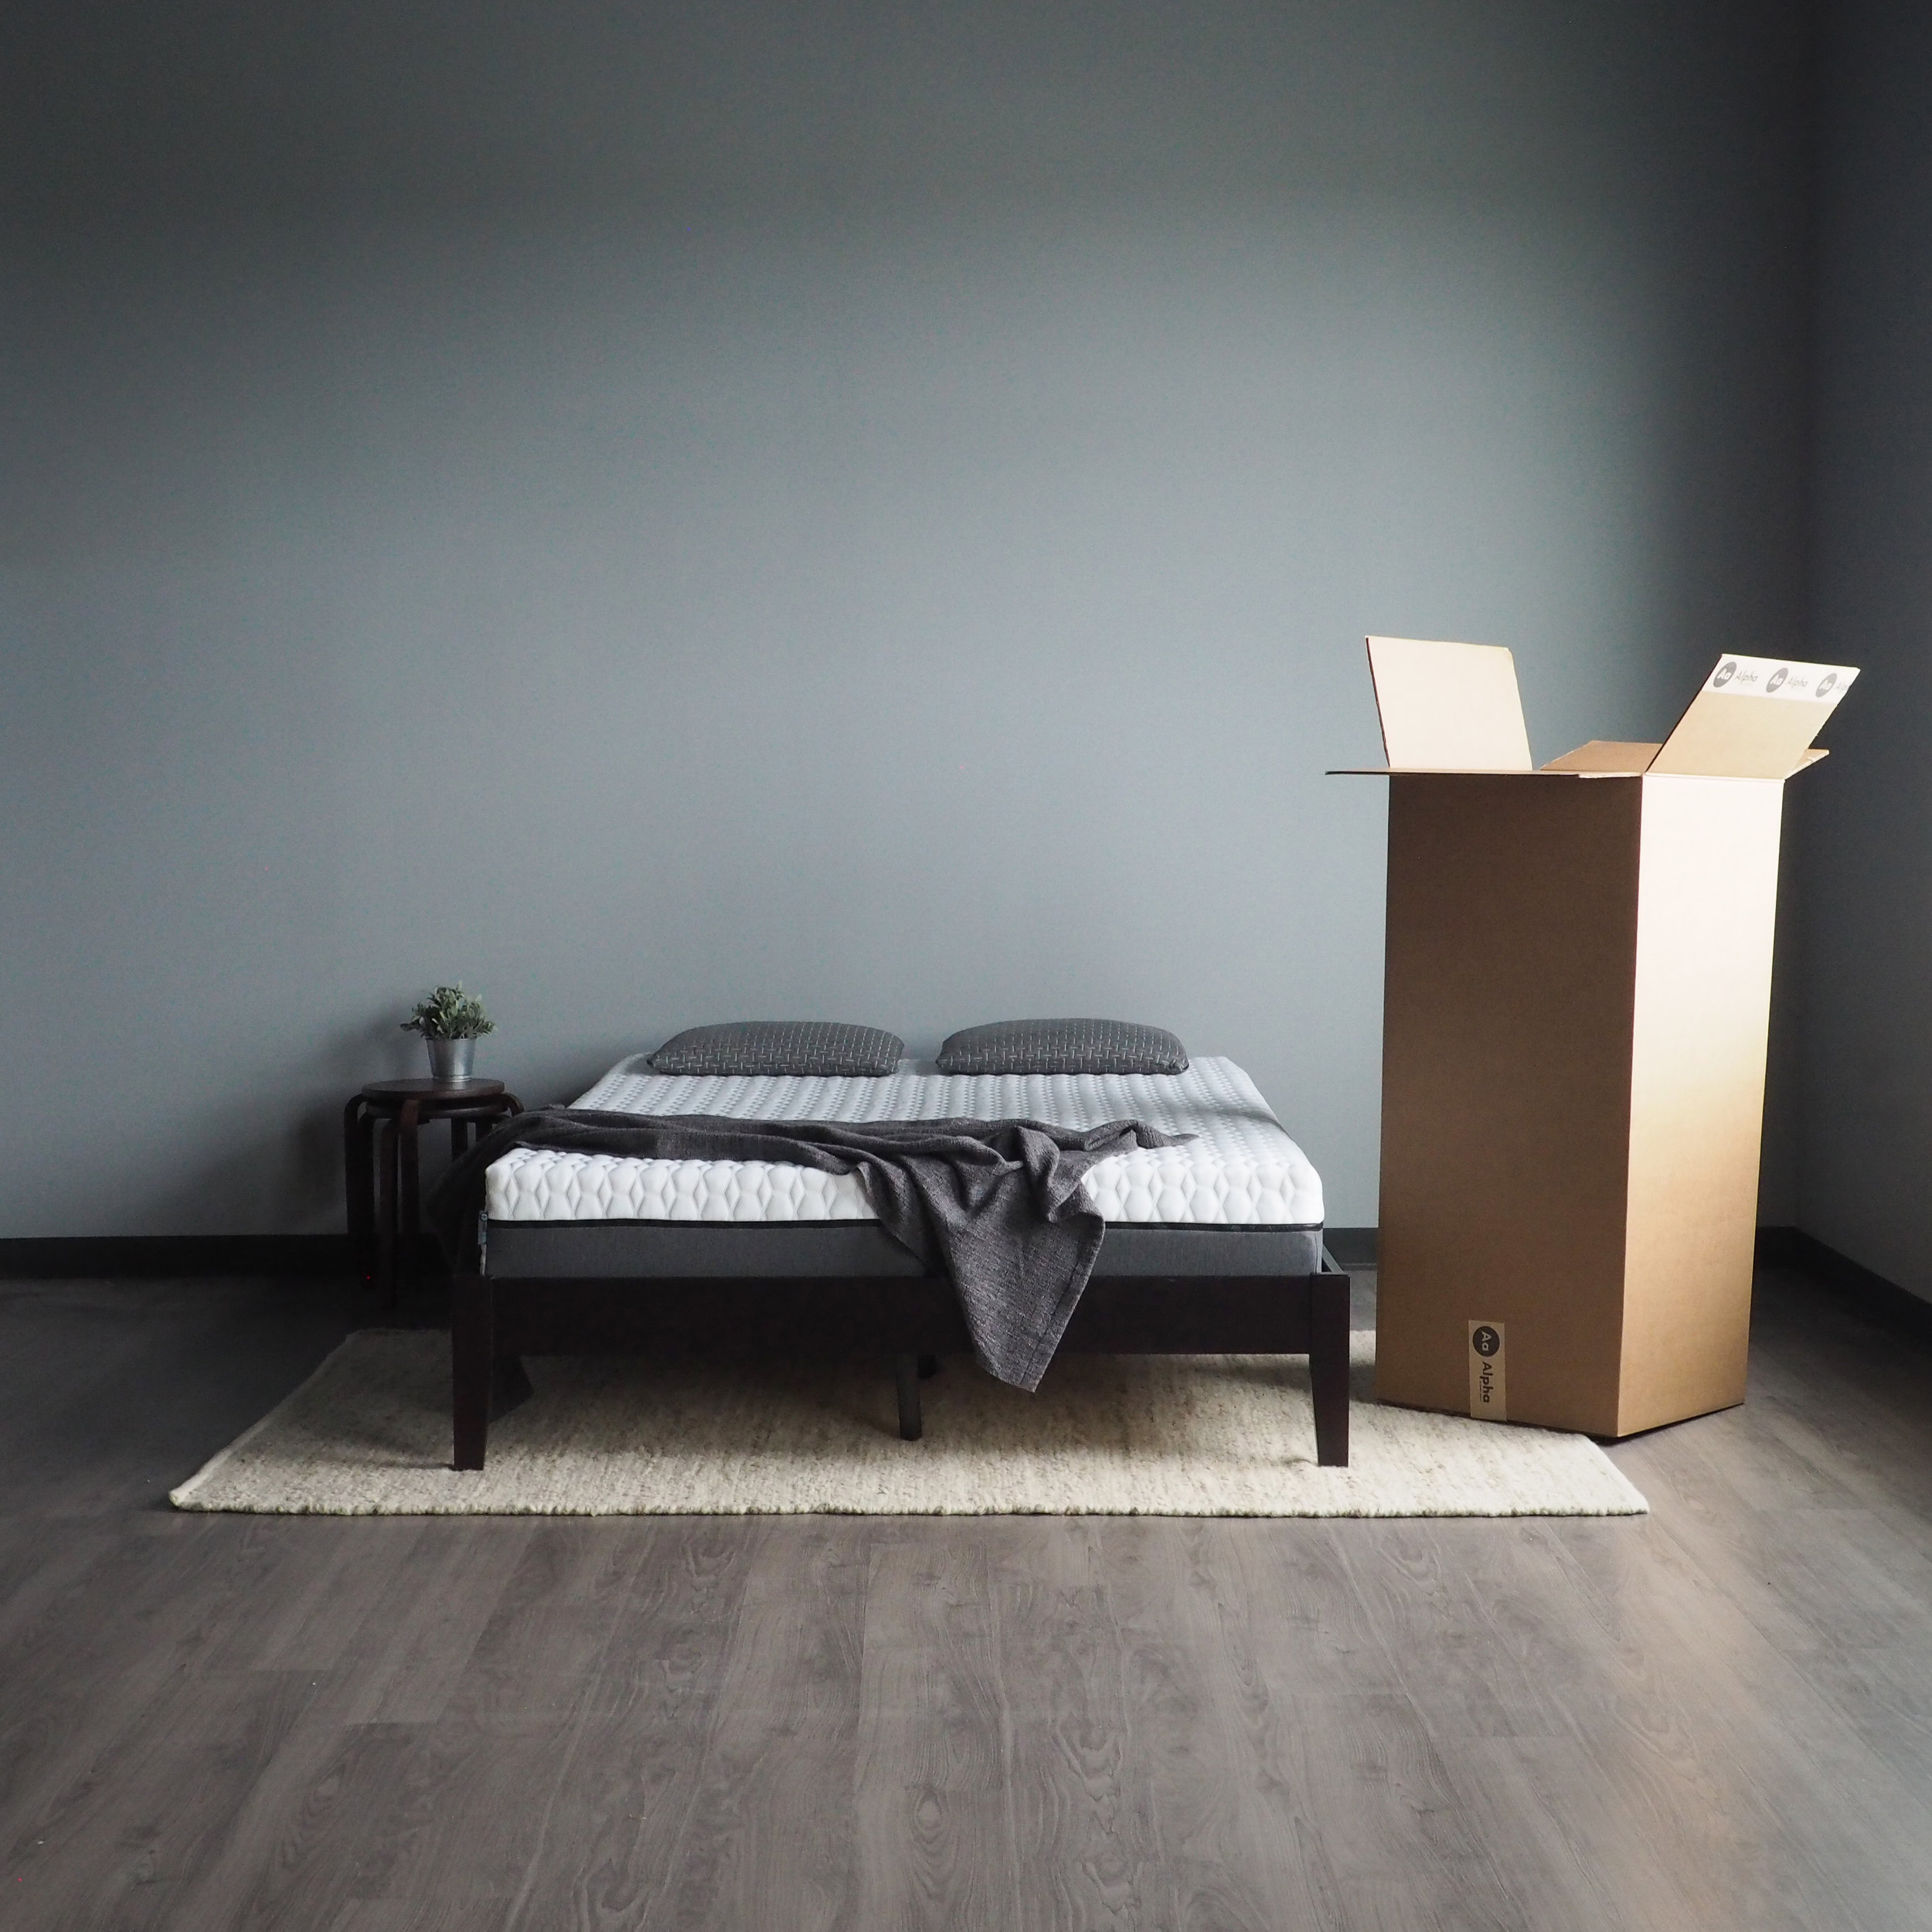 Don't live in our area? - That's fine. We ship our high quality mattresses that are tailored for your sleep position all across the United States.